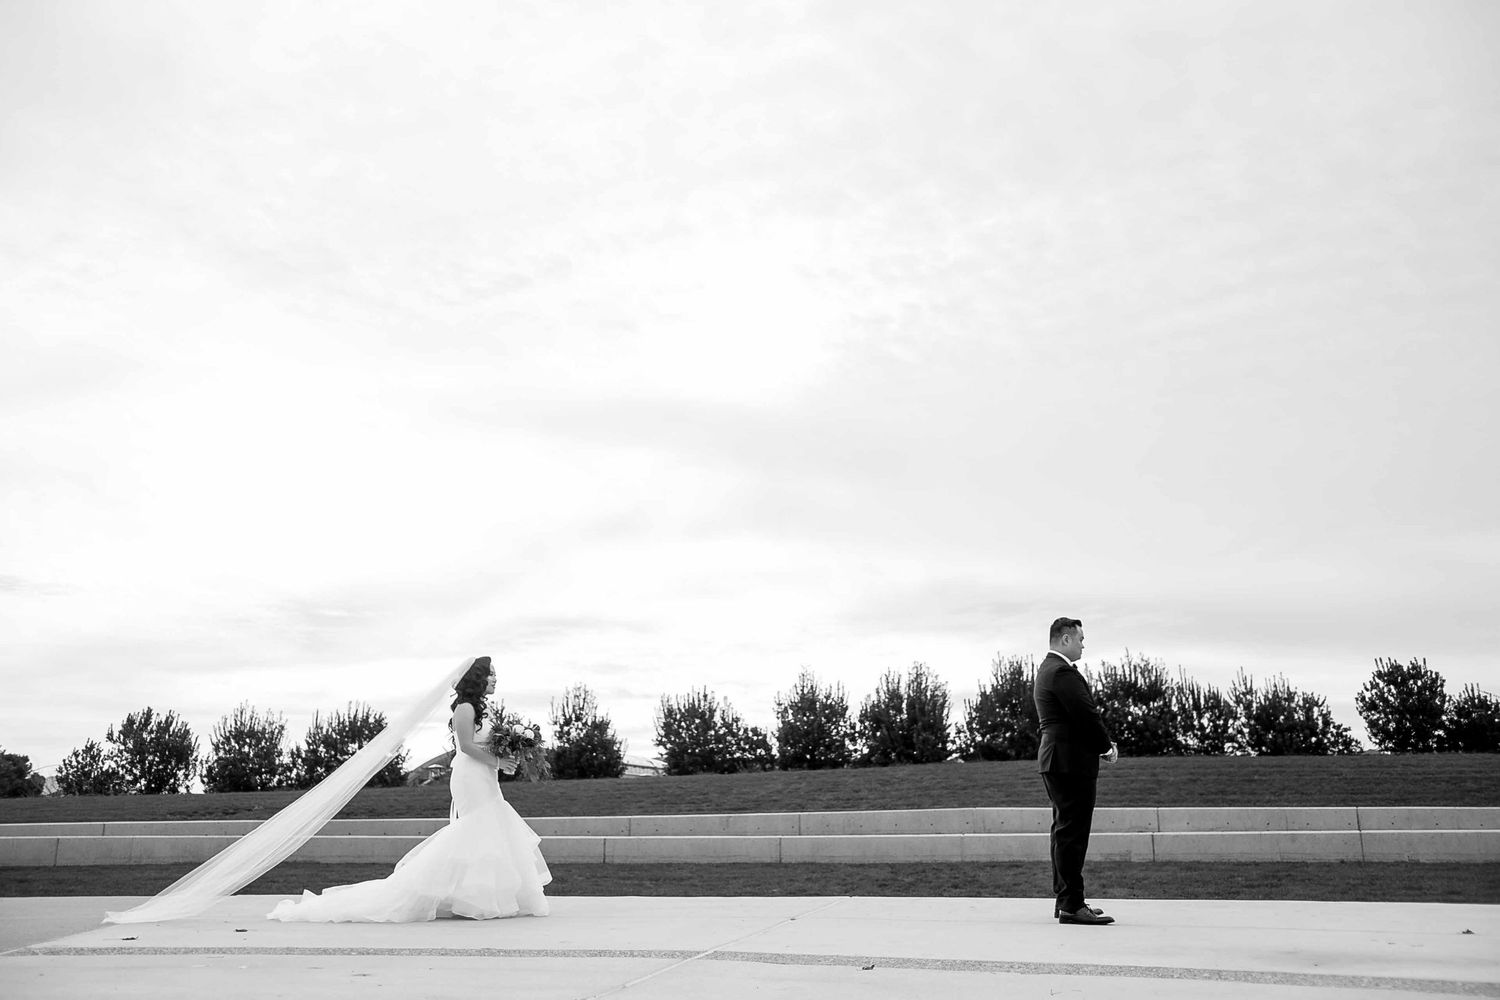 rebecca skidgle photography northen california napa wedding photographer first look bride groom pleasanton love romantic